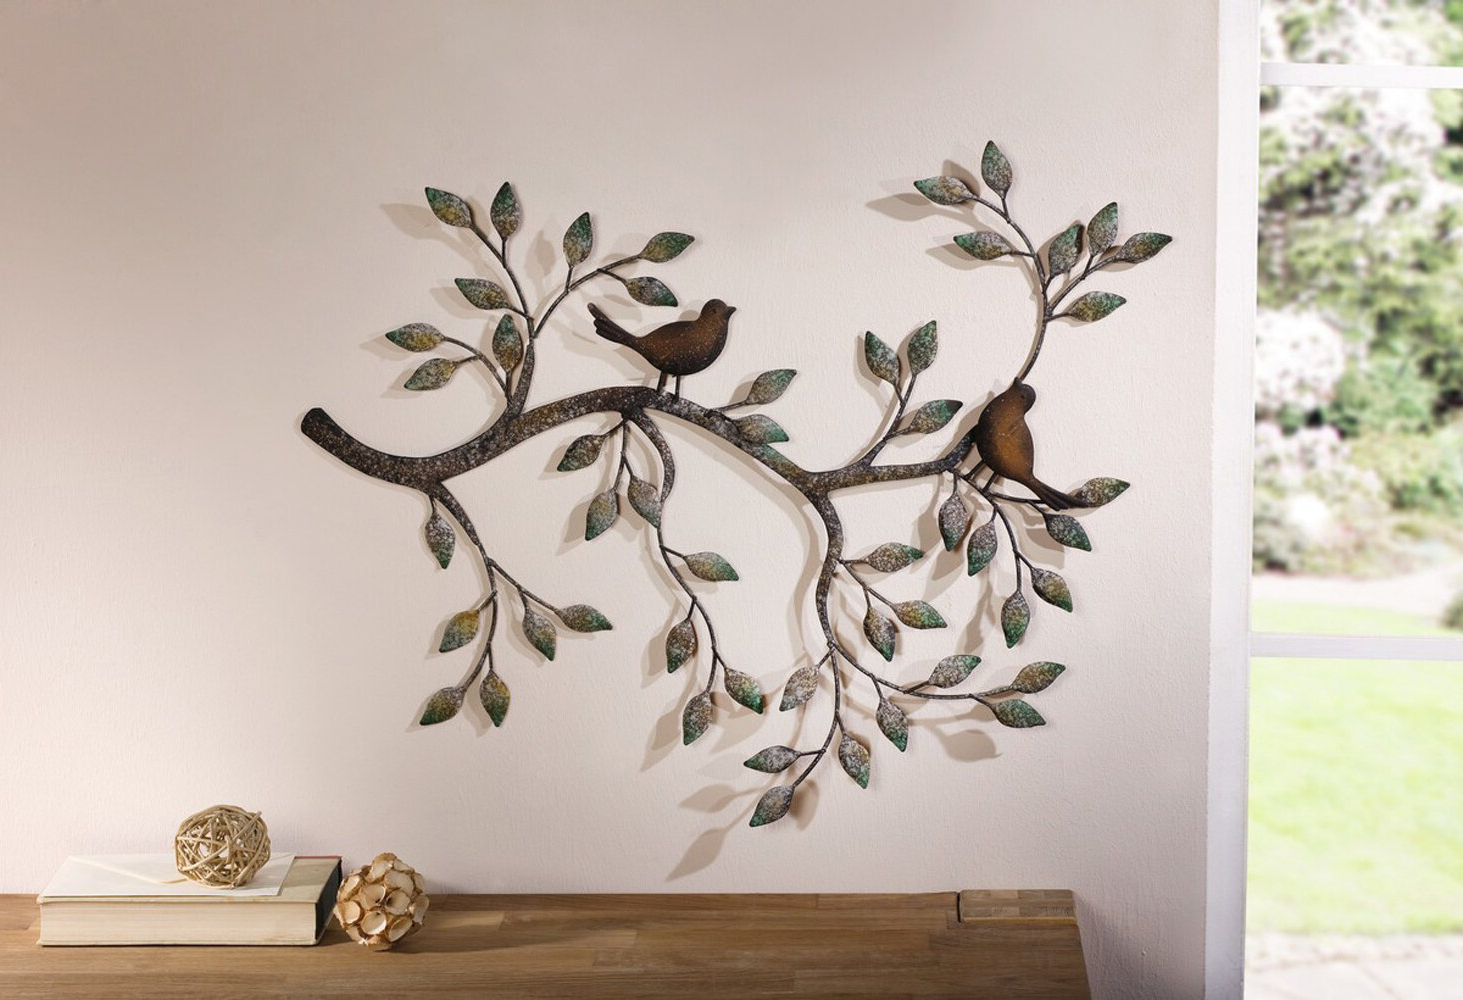 Best And Newest Branches With Birds Metal Wall Décor Intended For Tree Branch Wall Décor By Fleur De Lis Living (View 6 of 20)